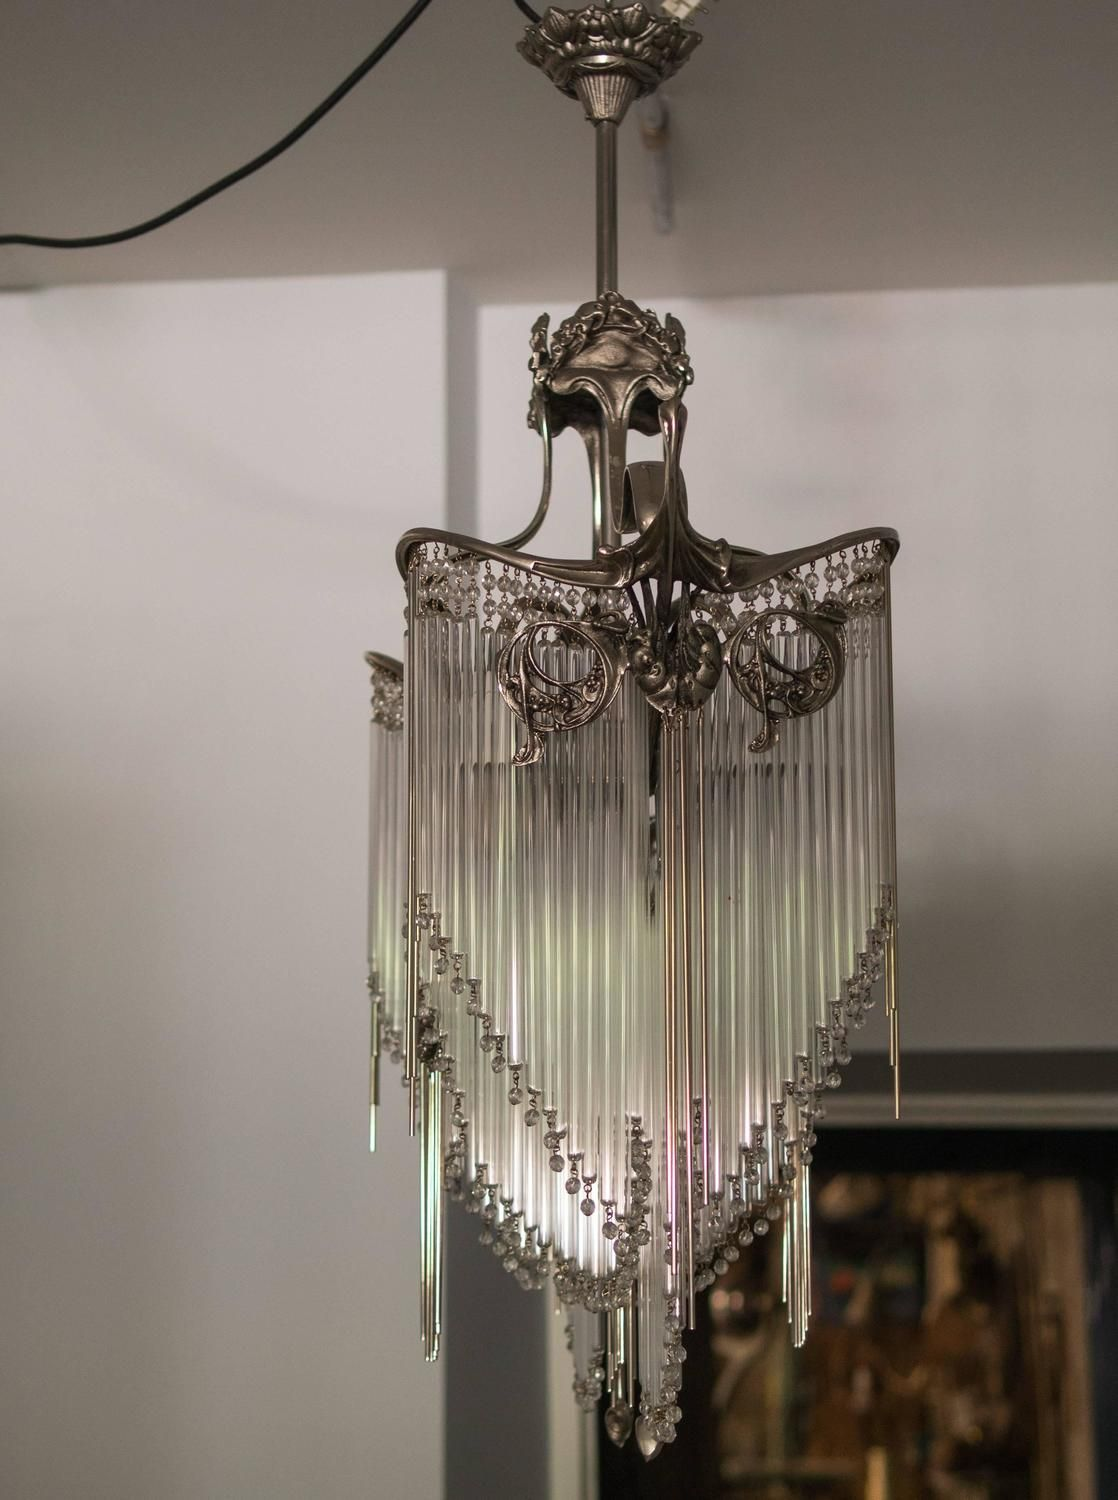 Decor with chandelier lamps